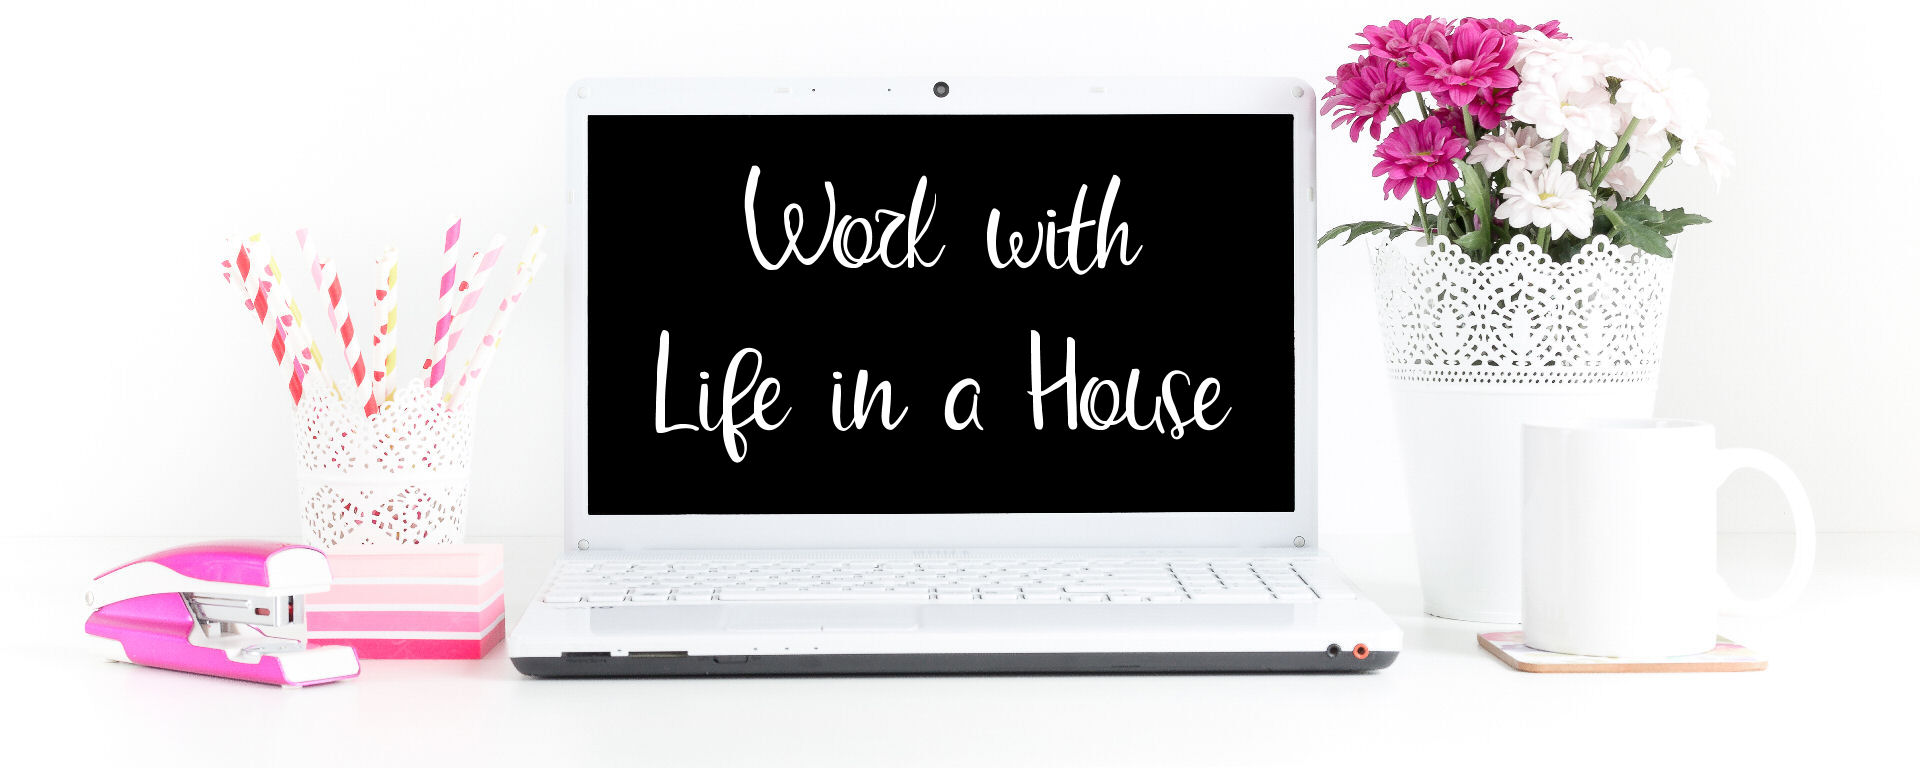 work with life in a house